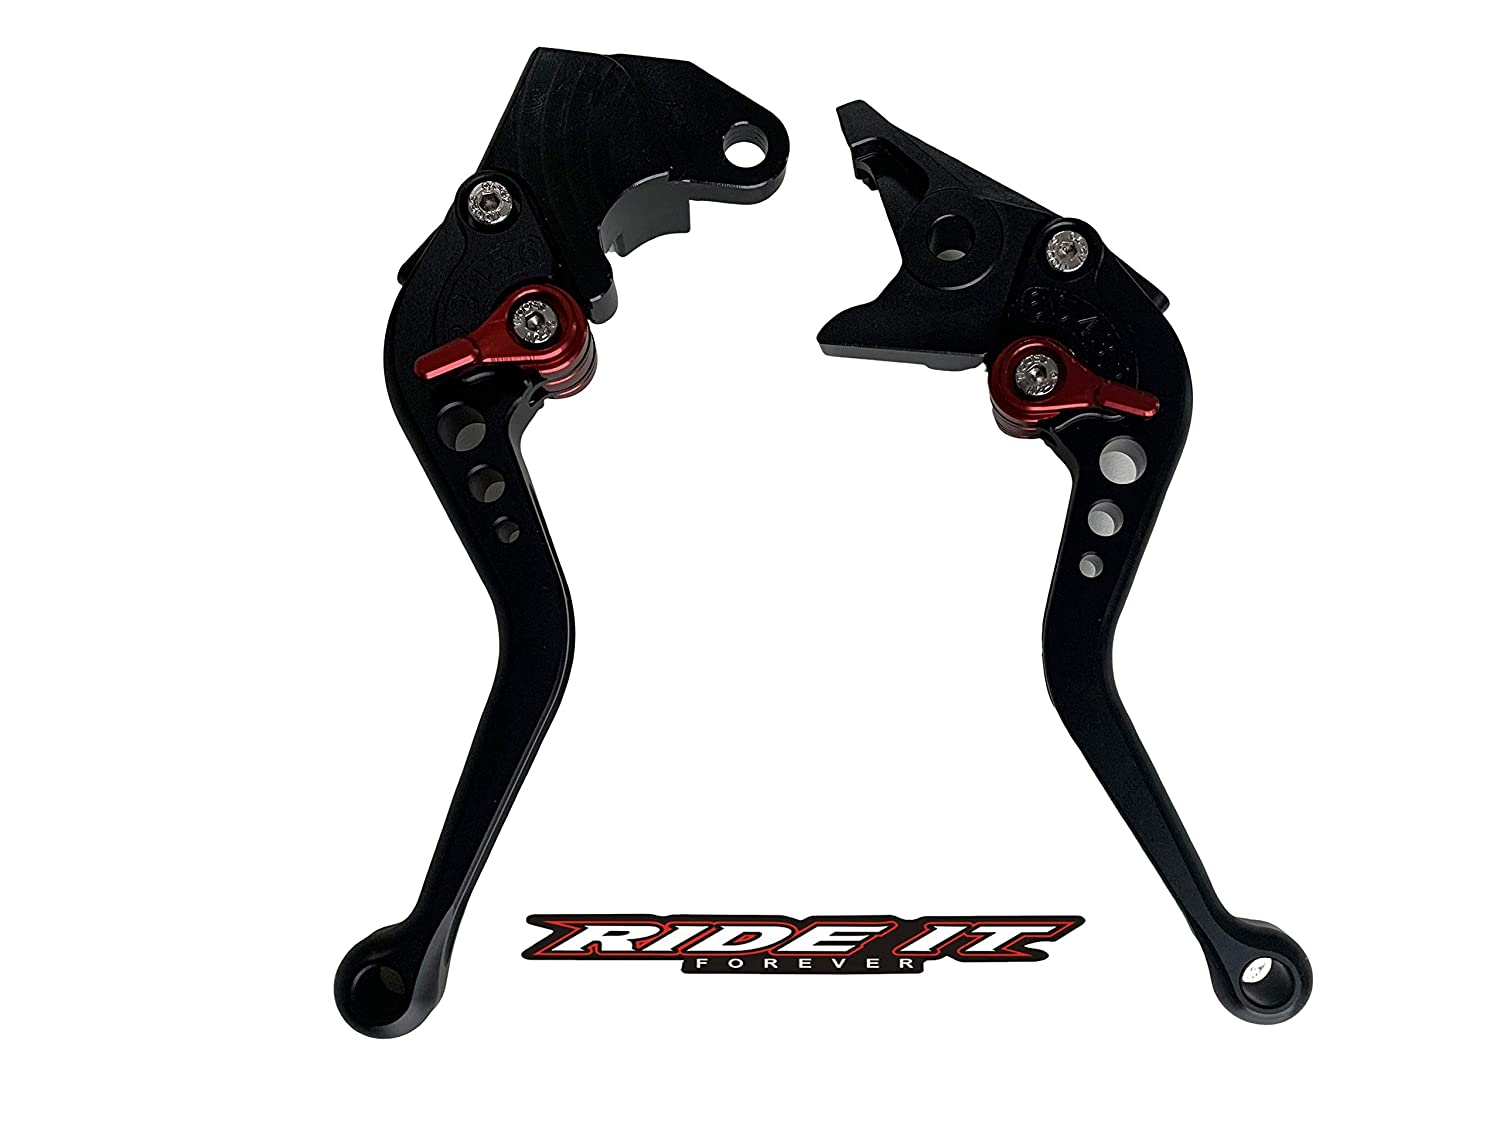 Short Brake Clutch Levers for SUZUKI GSXR600 97-03,GSXR750 96-03,GSXR1000 01-04,GSR750 GSX-S750 11-16,TL1000S 97-01,SFV650 Gladius 09-15,DL650 Vstrom 11-12,GSR600 06-11-Purple